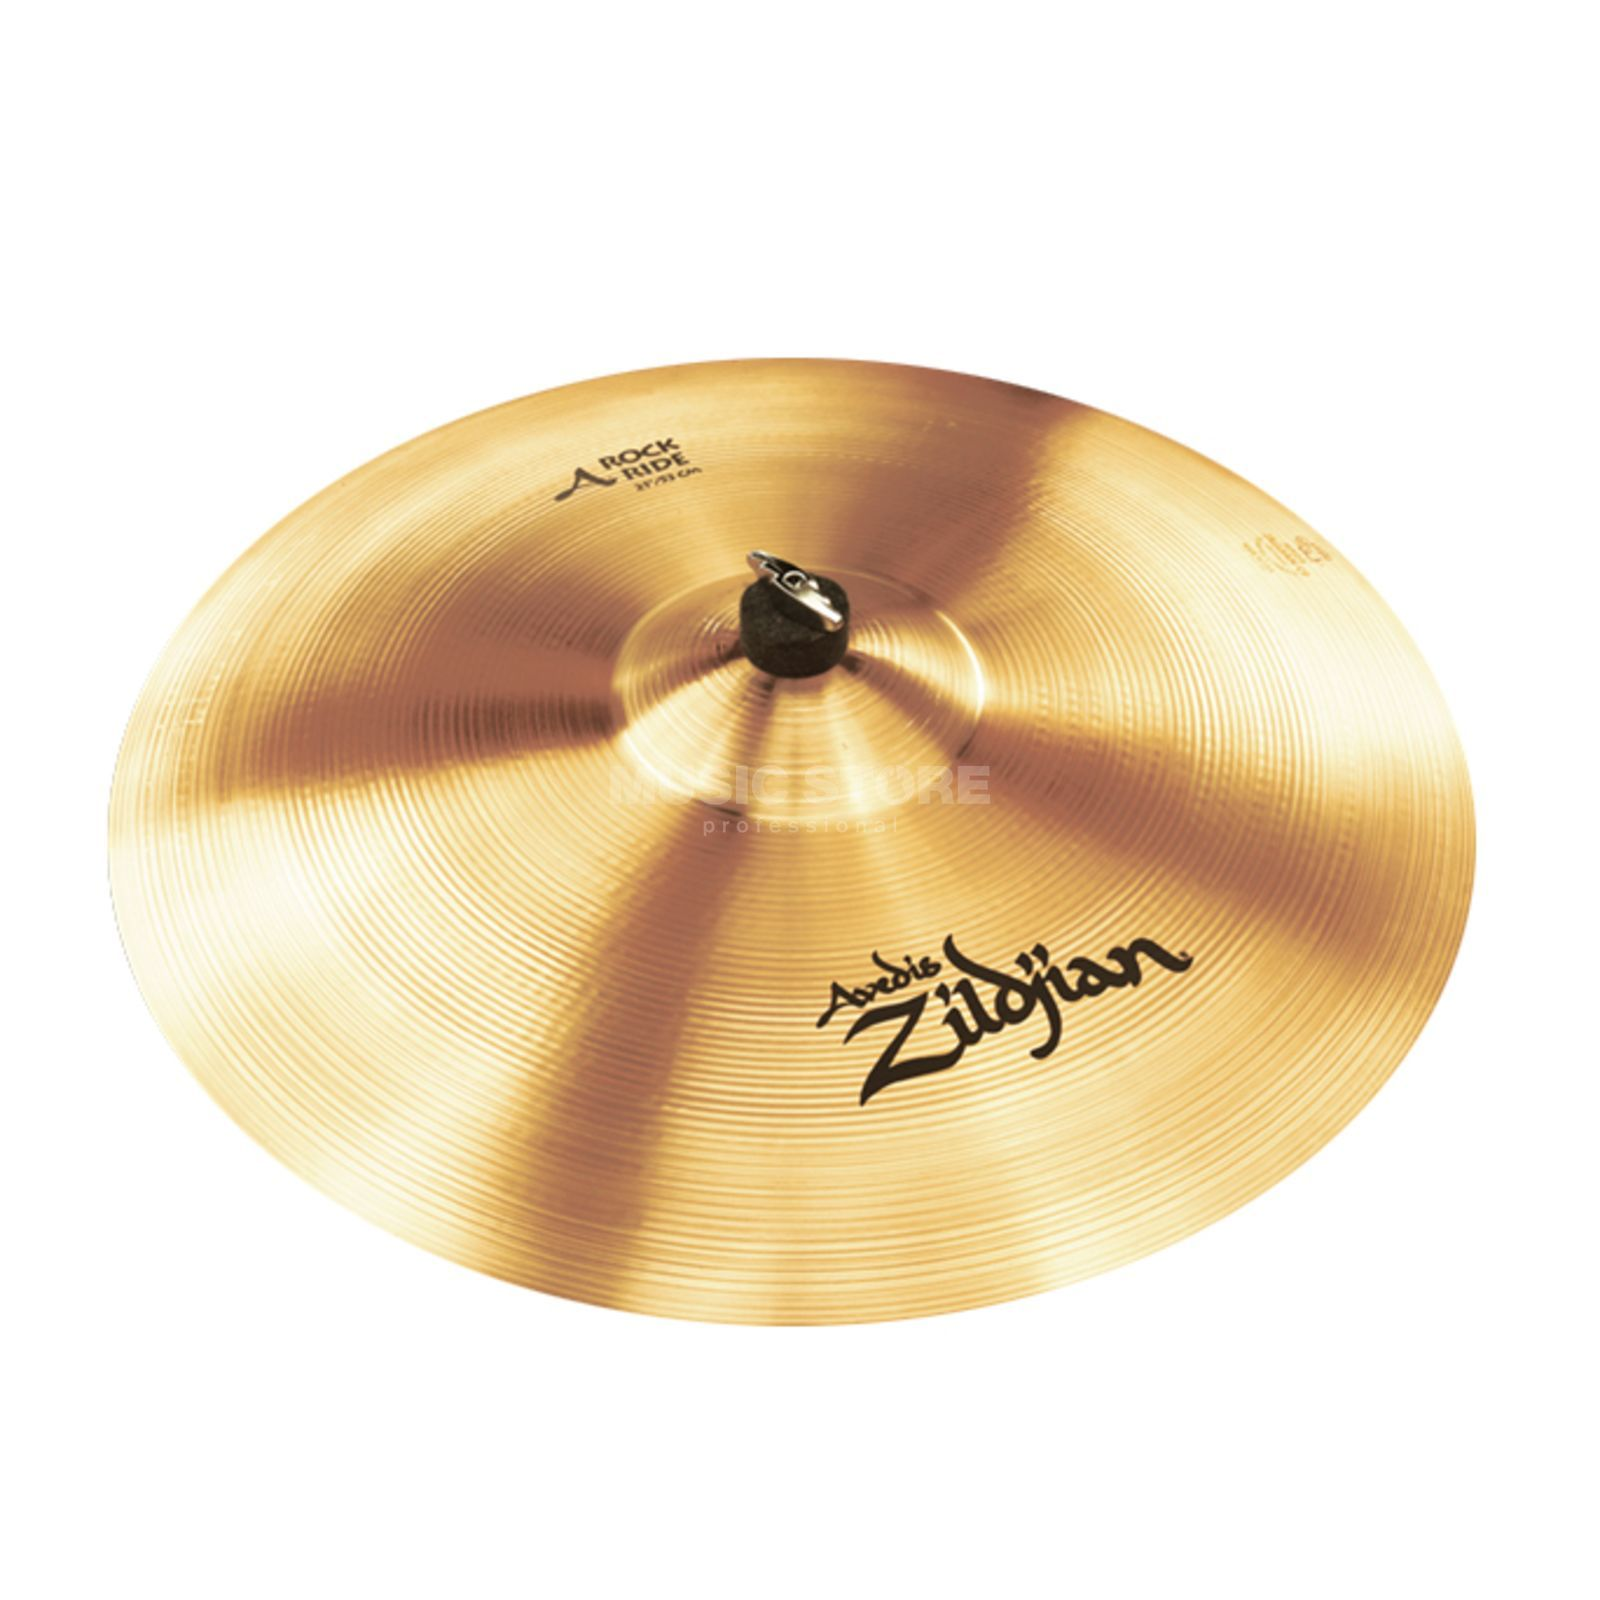 "Zildjian A' Zildjian Rock Ride 21"", Traditional Finish Productafbeelding"